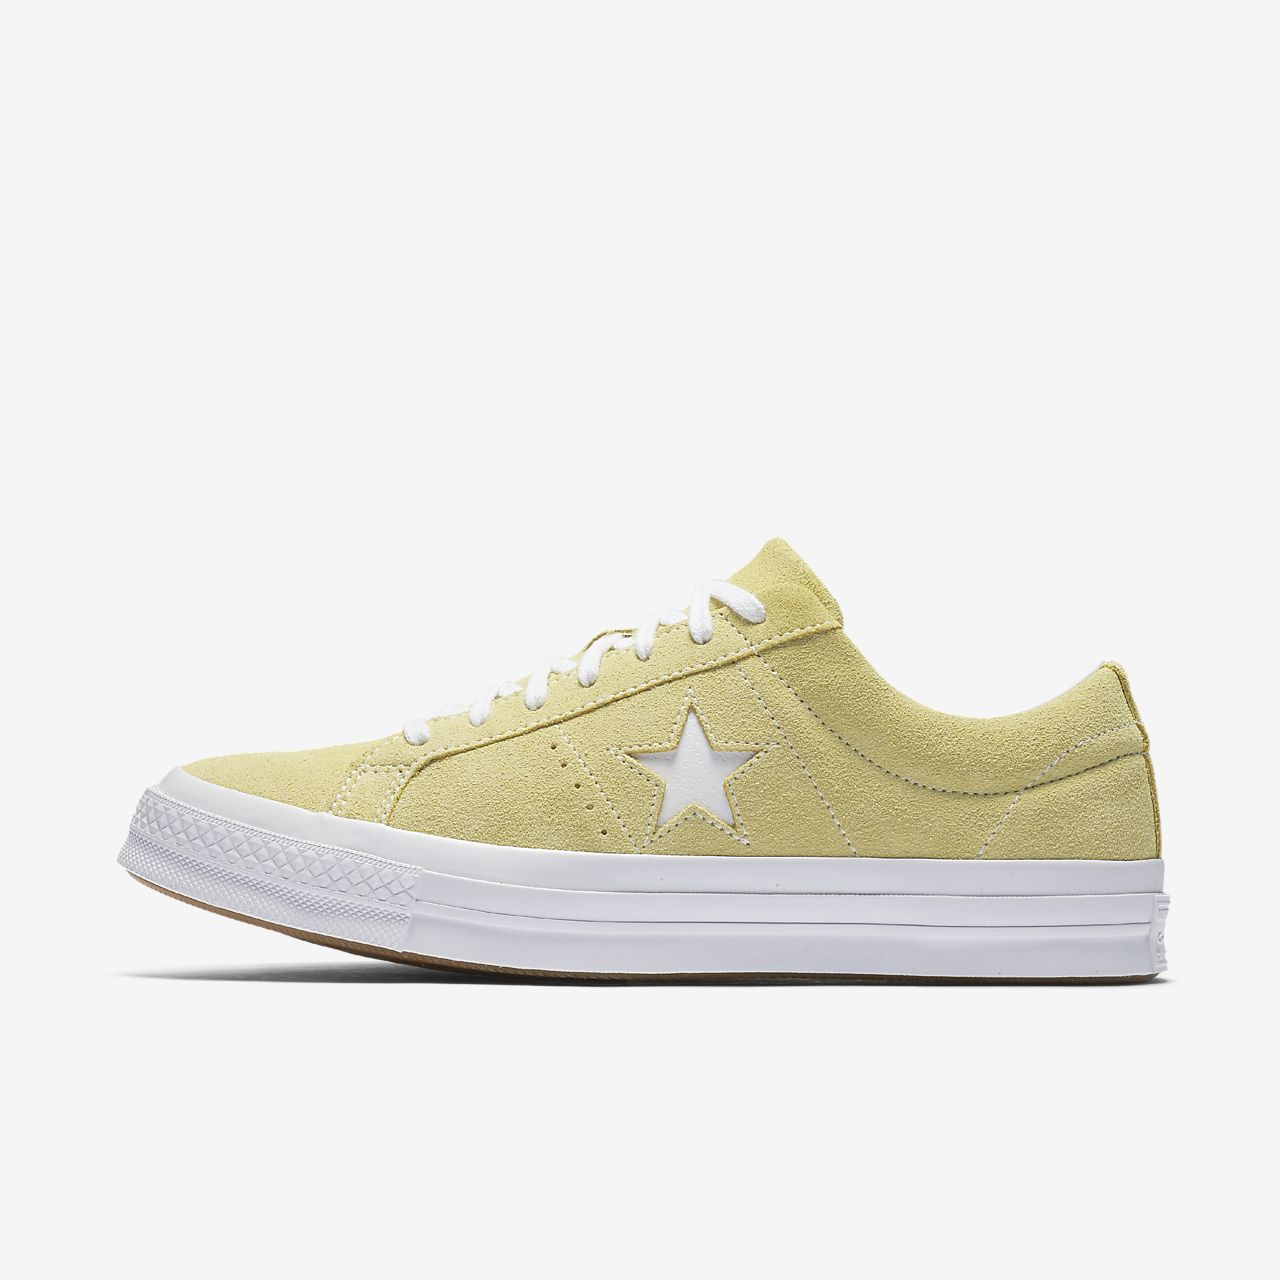 Converse One Star Classic Suede Low Top Unisex Shoe